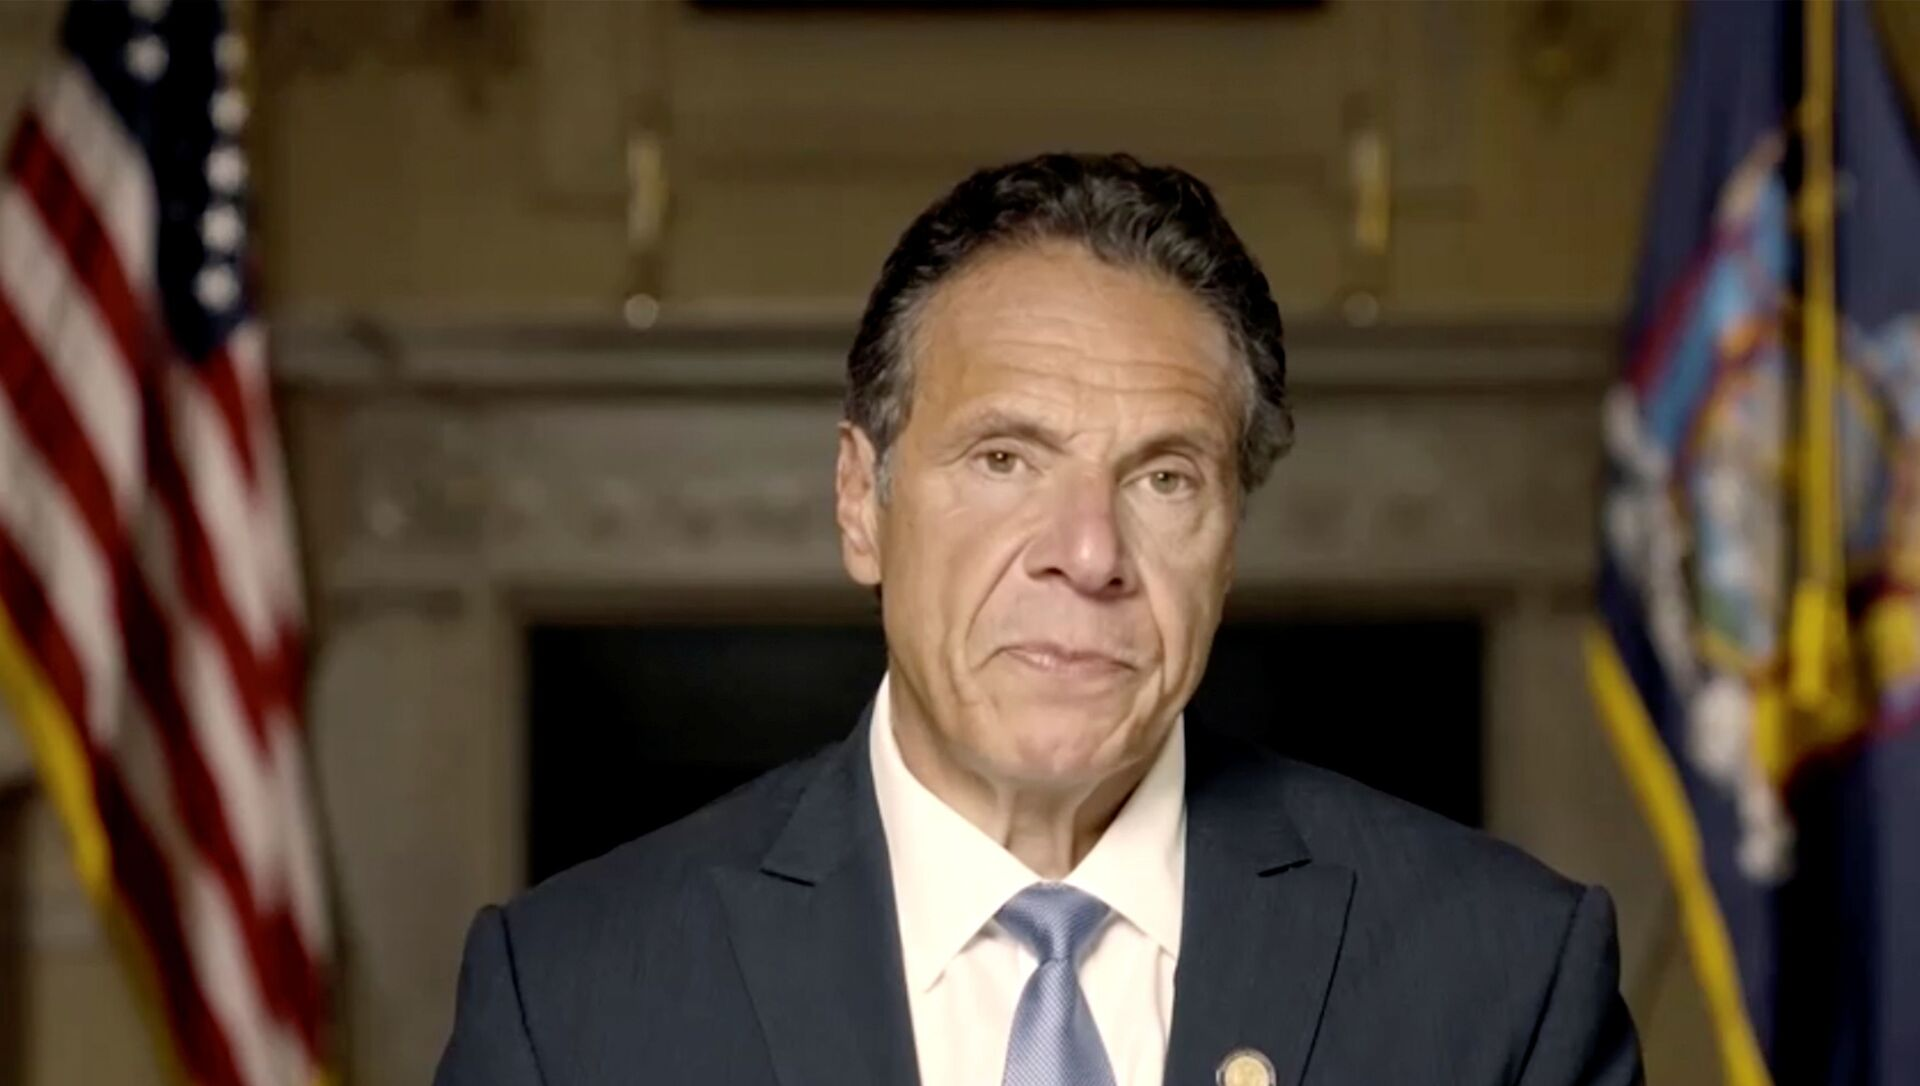 New York Governor Andrew Cuomo makes a statement in this screen grab taken from a pre-recorded video released by Office of the NY Governor, in New York, U.S., August 3, 2021. - Sputnik International, 1920, 04.08.2021